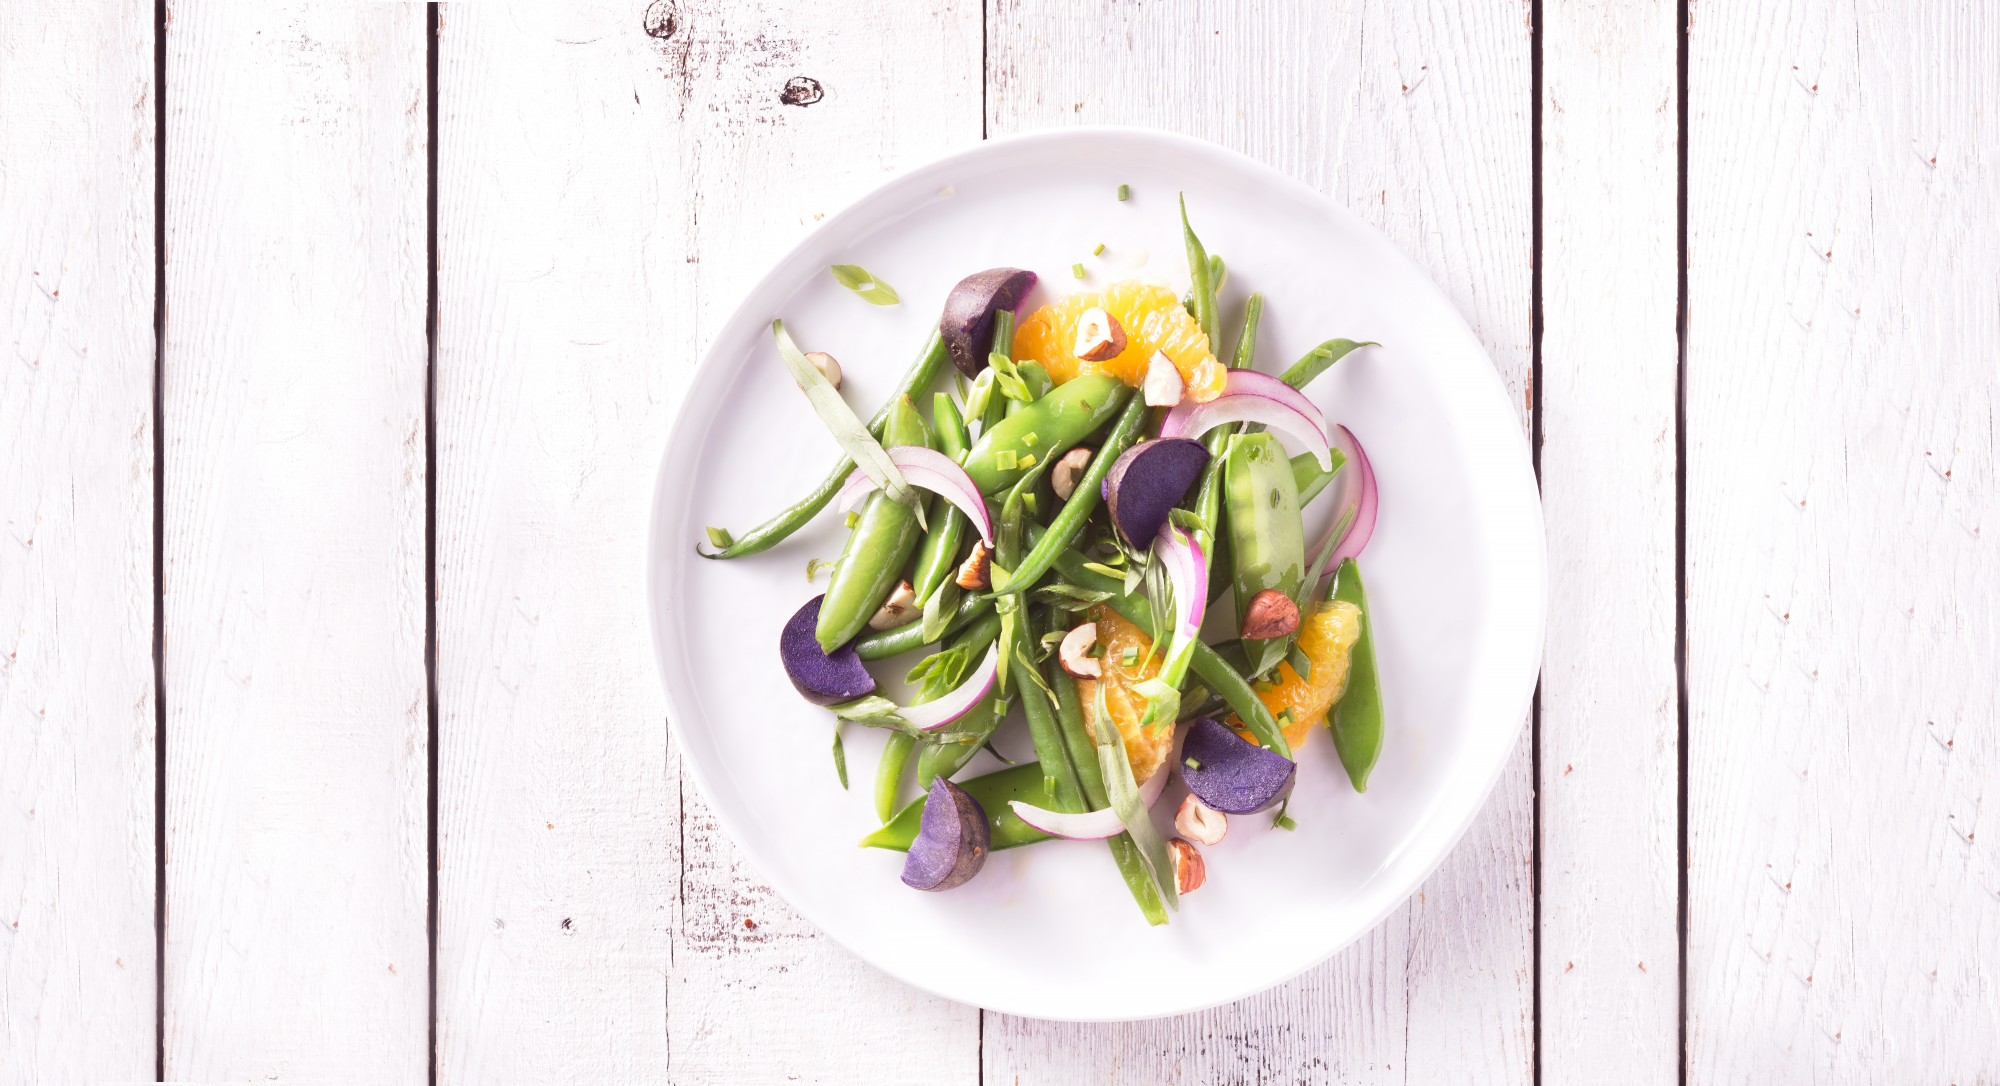 Green Beans, Snow Peas, and Purple Potatoes Shine In This Simple Side Dish